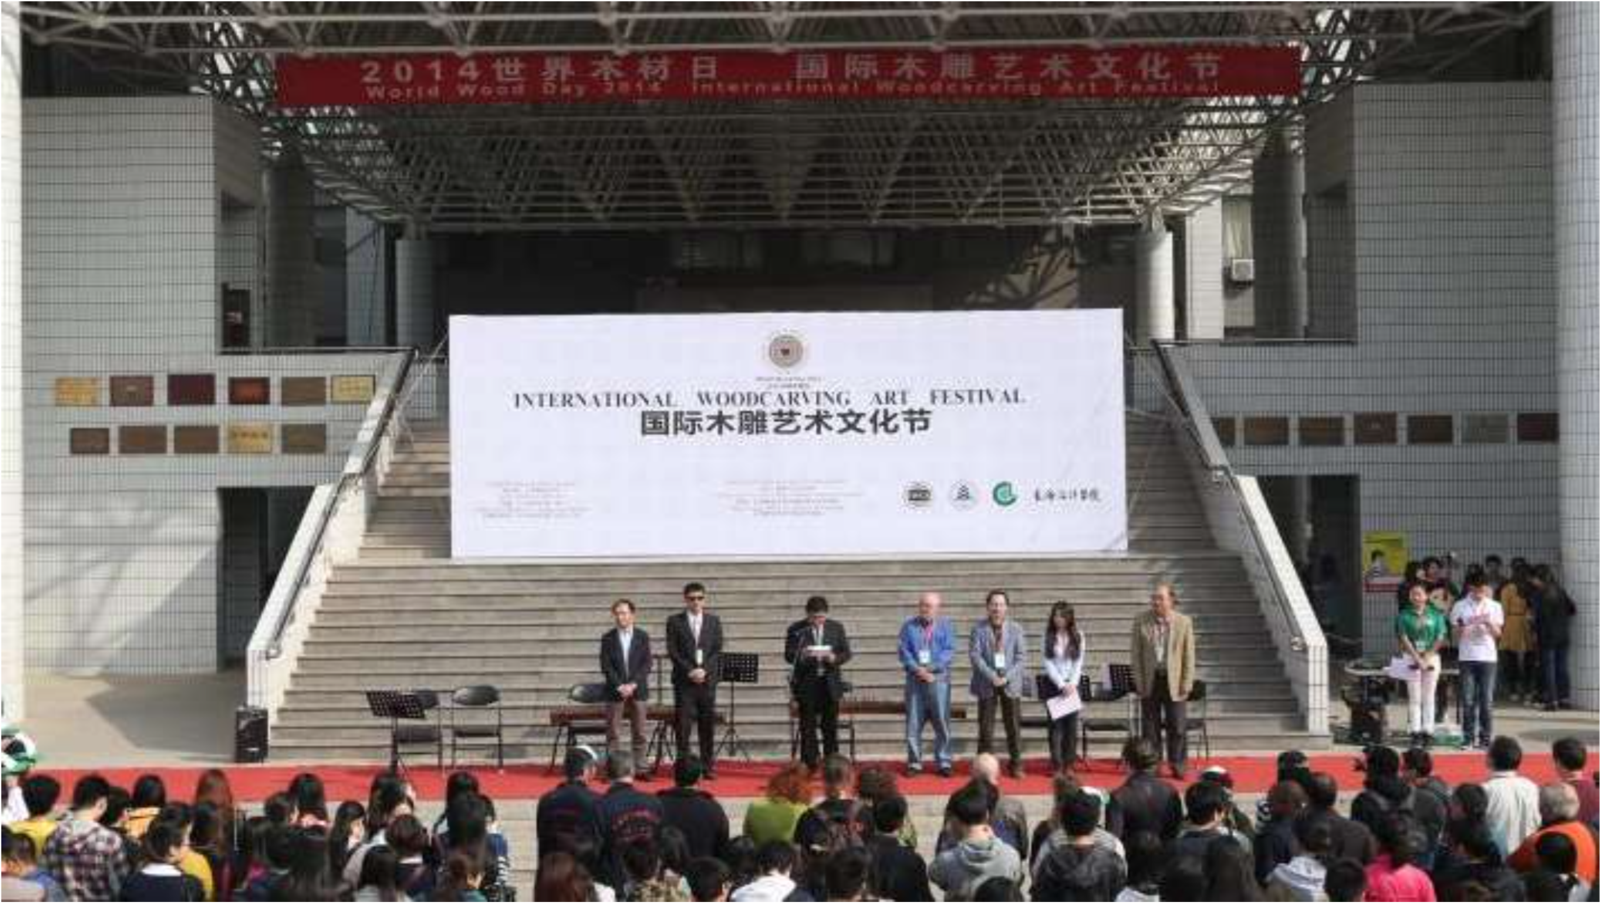 2014 World Wood Day - Beijing